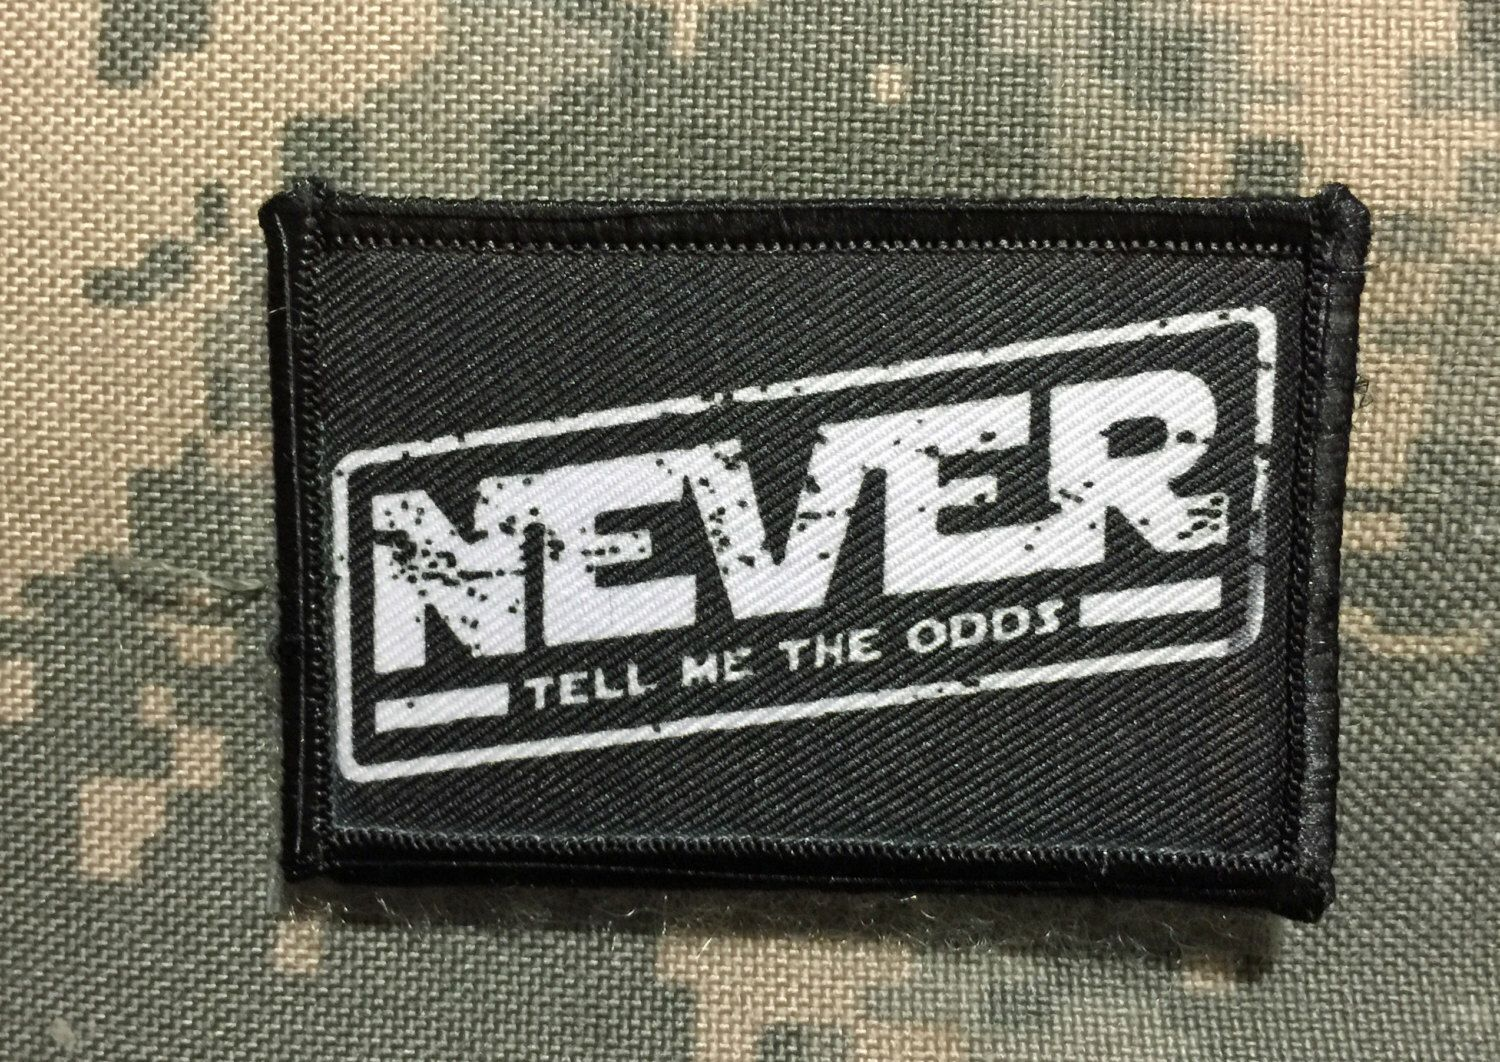 Star wars never tell me the odds velcro morale patch tactical mil spec